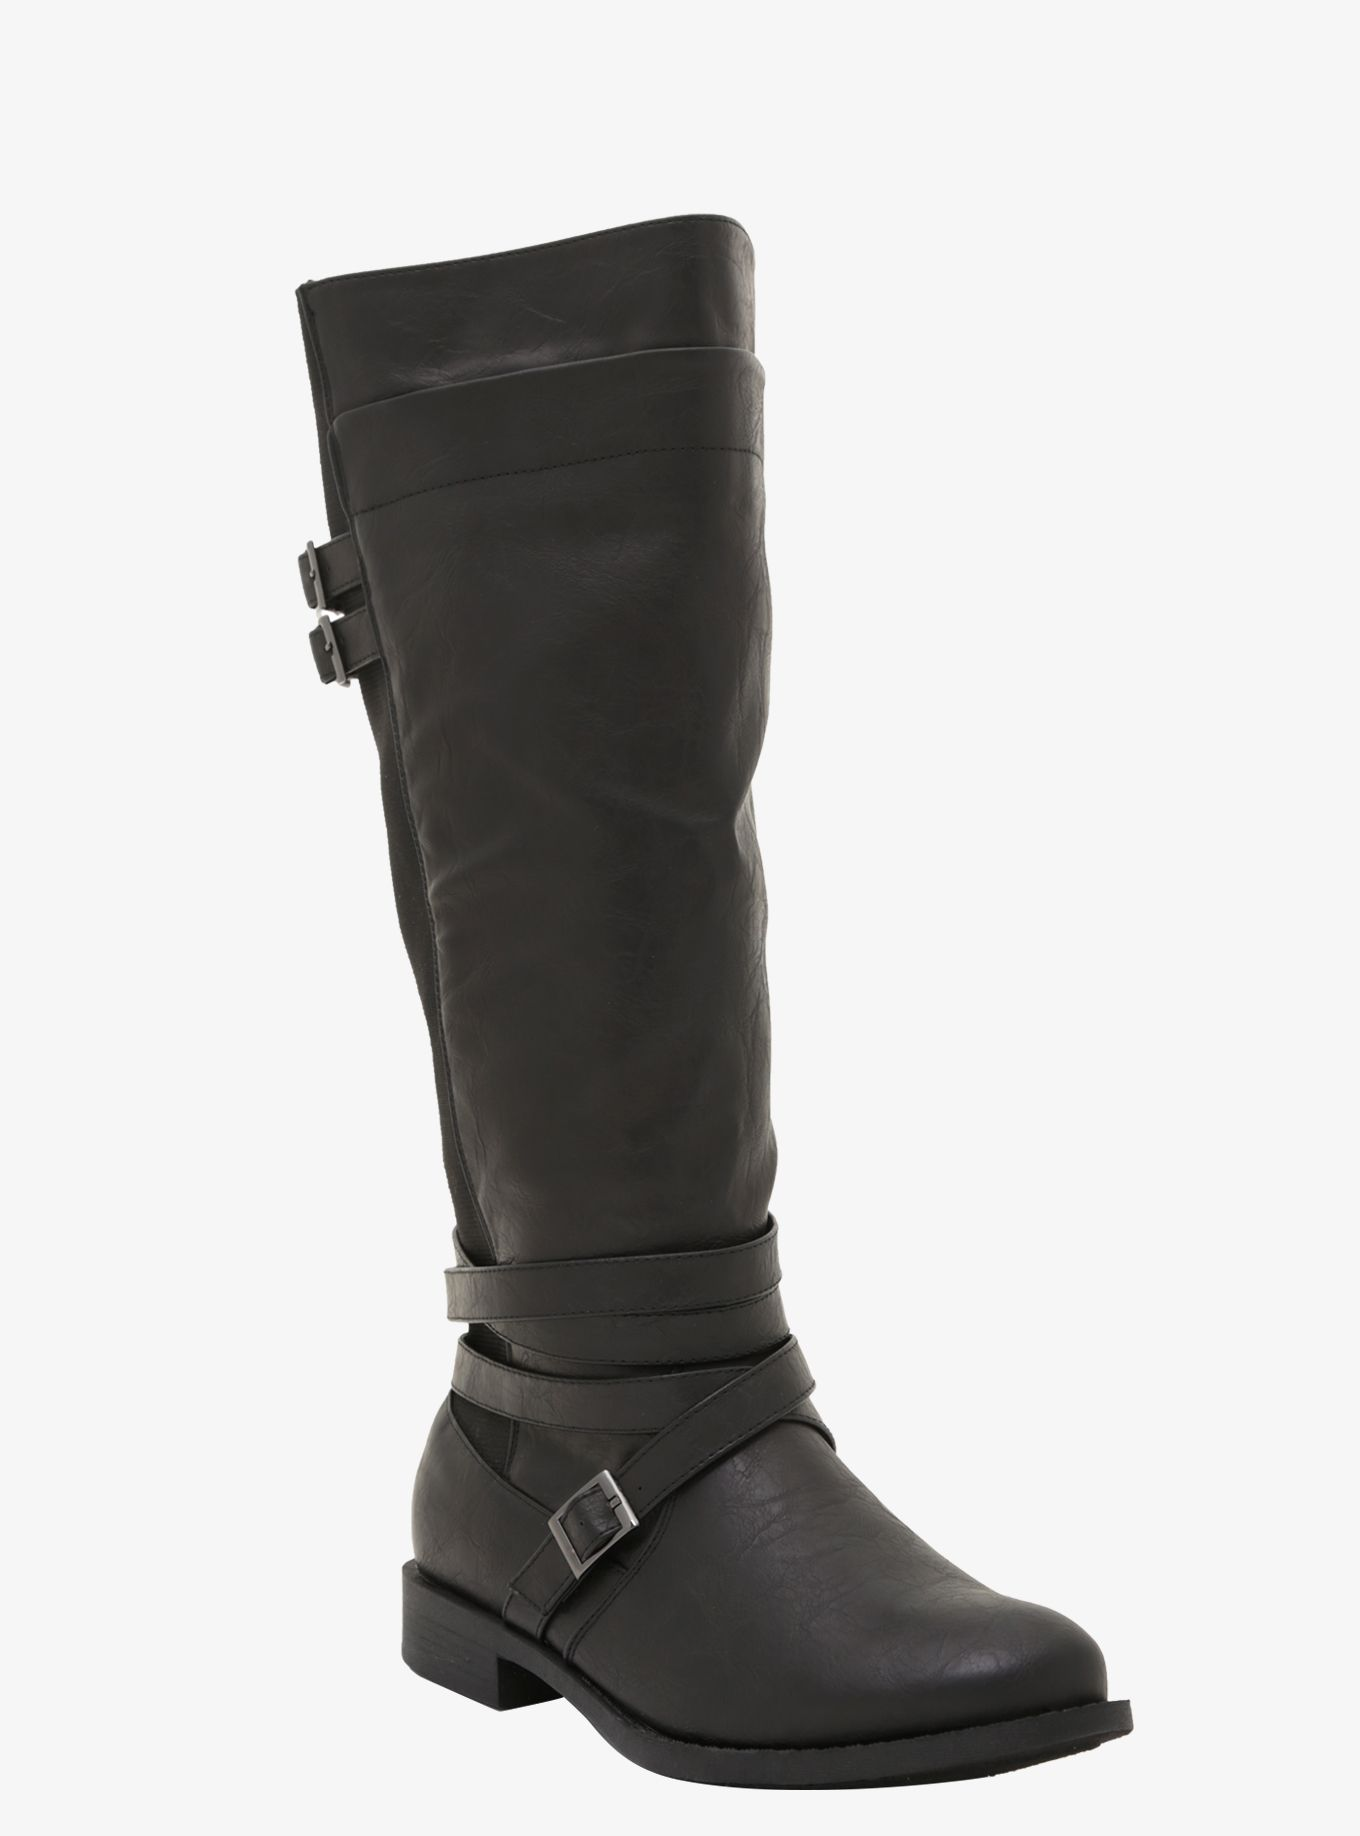 00d5c9f68fa2 Strappy Riding Boots from Torrid  Remember this when looking for truly wide  calf boots.